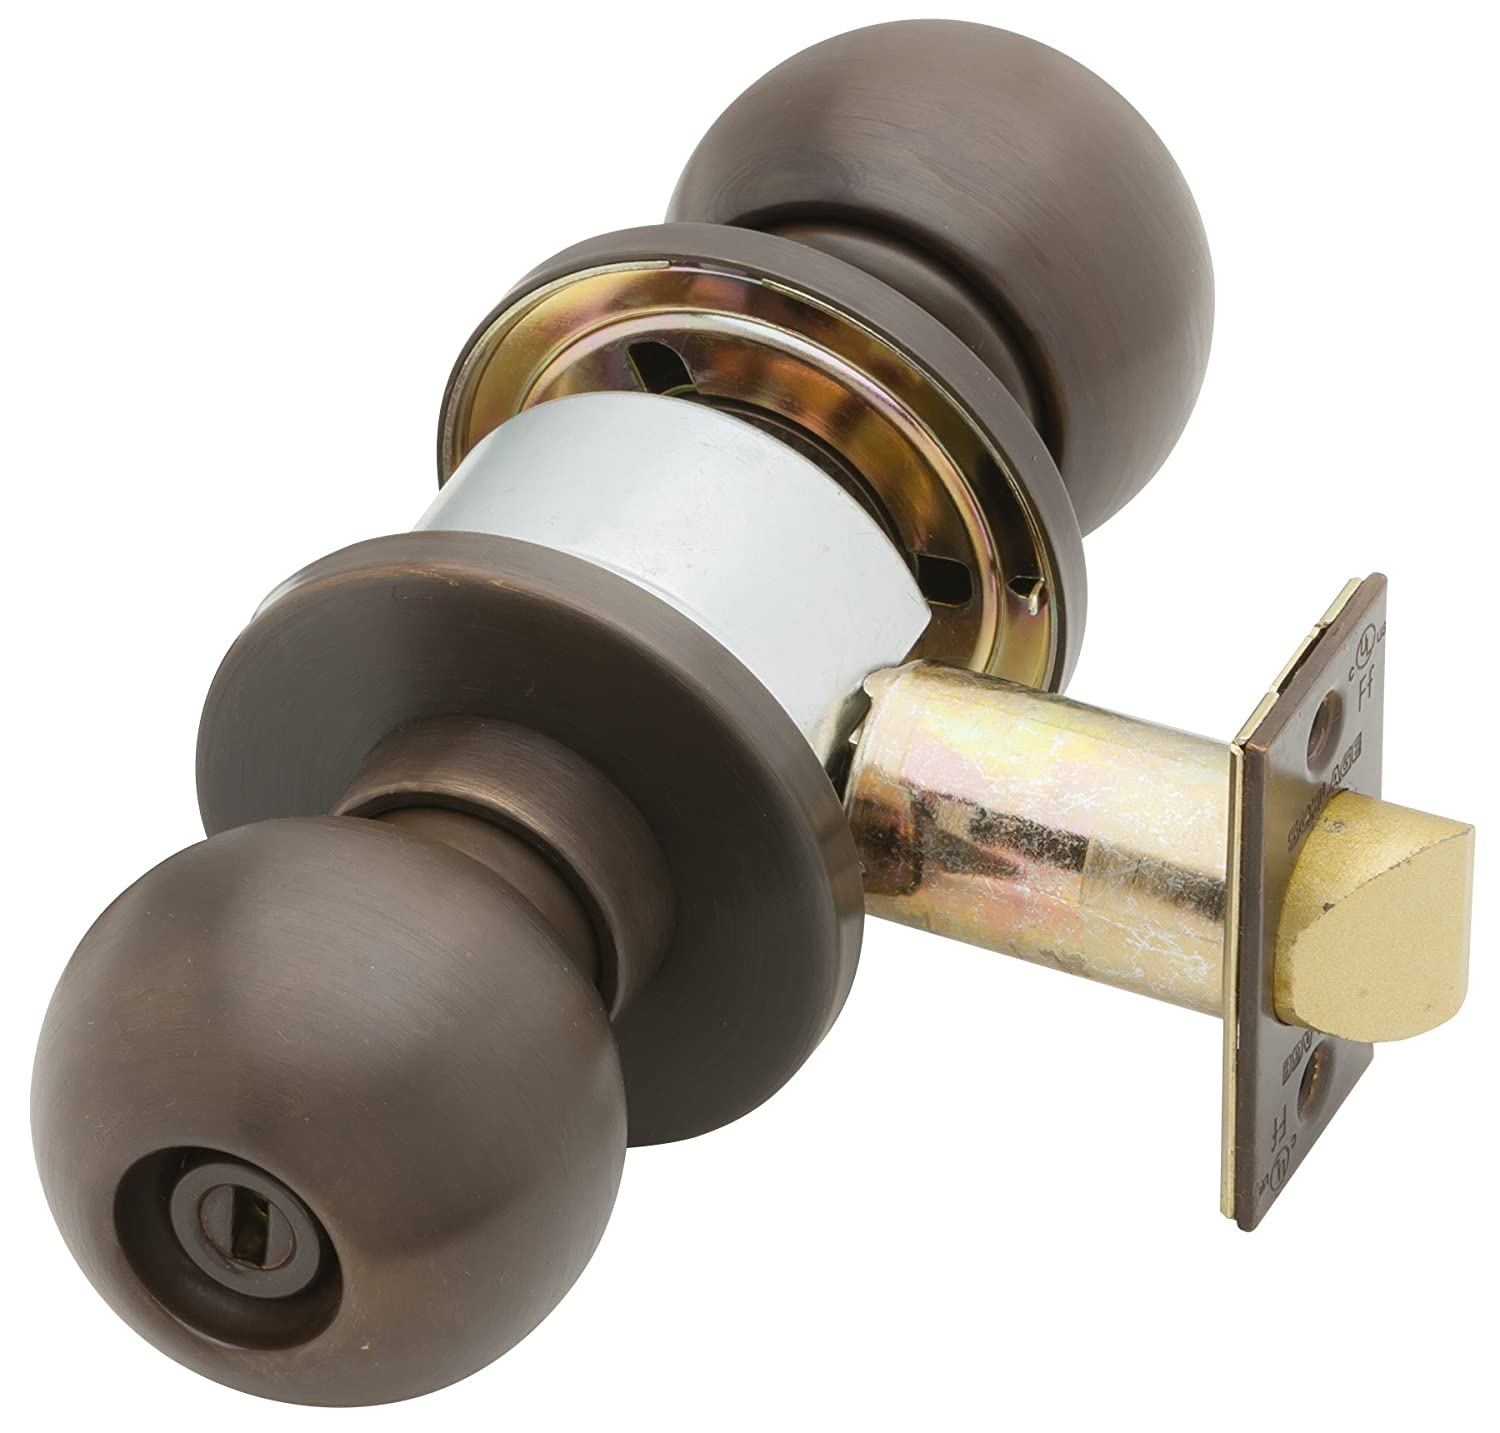 Privacy Function Orbit Design Keyless Schlage D40S ORB 613 Series D Grade 1 Cylindrical Lock Oil Rubbed Bronze Finish